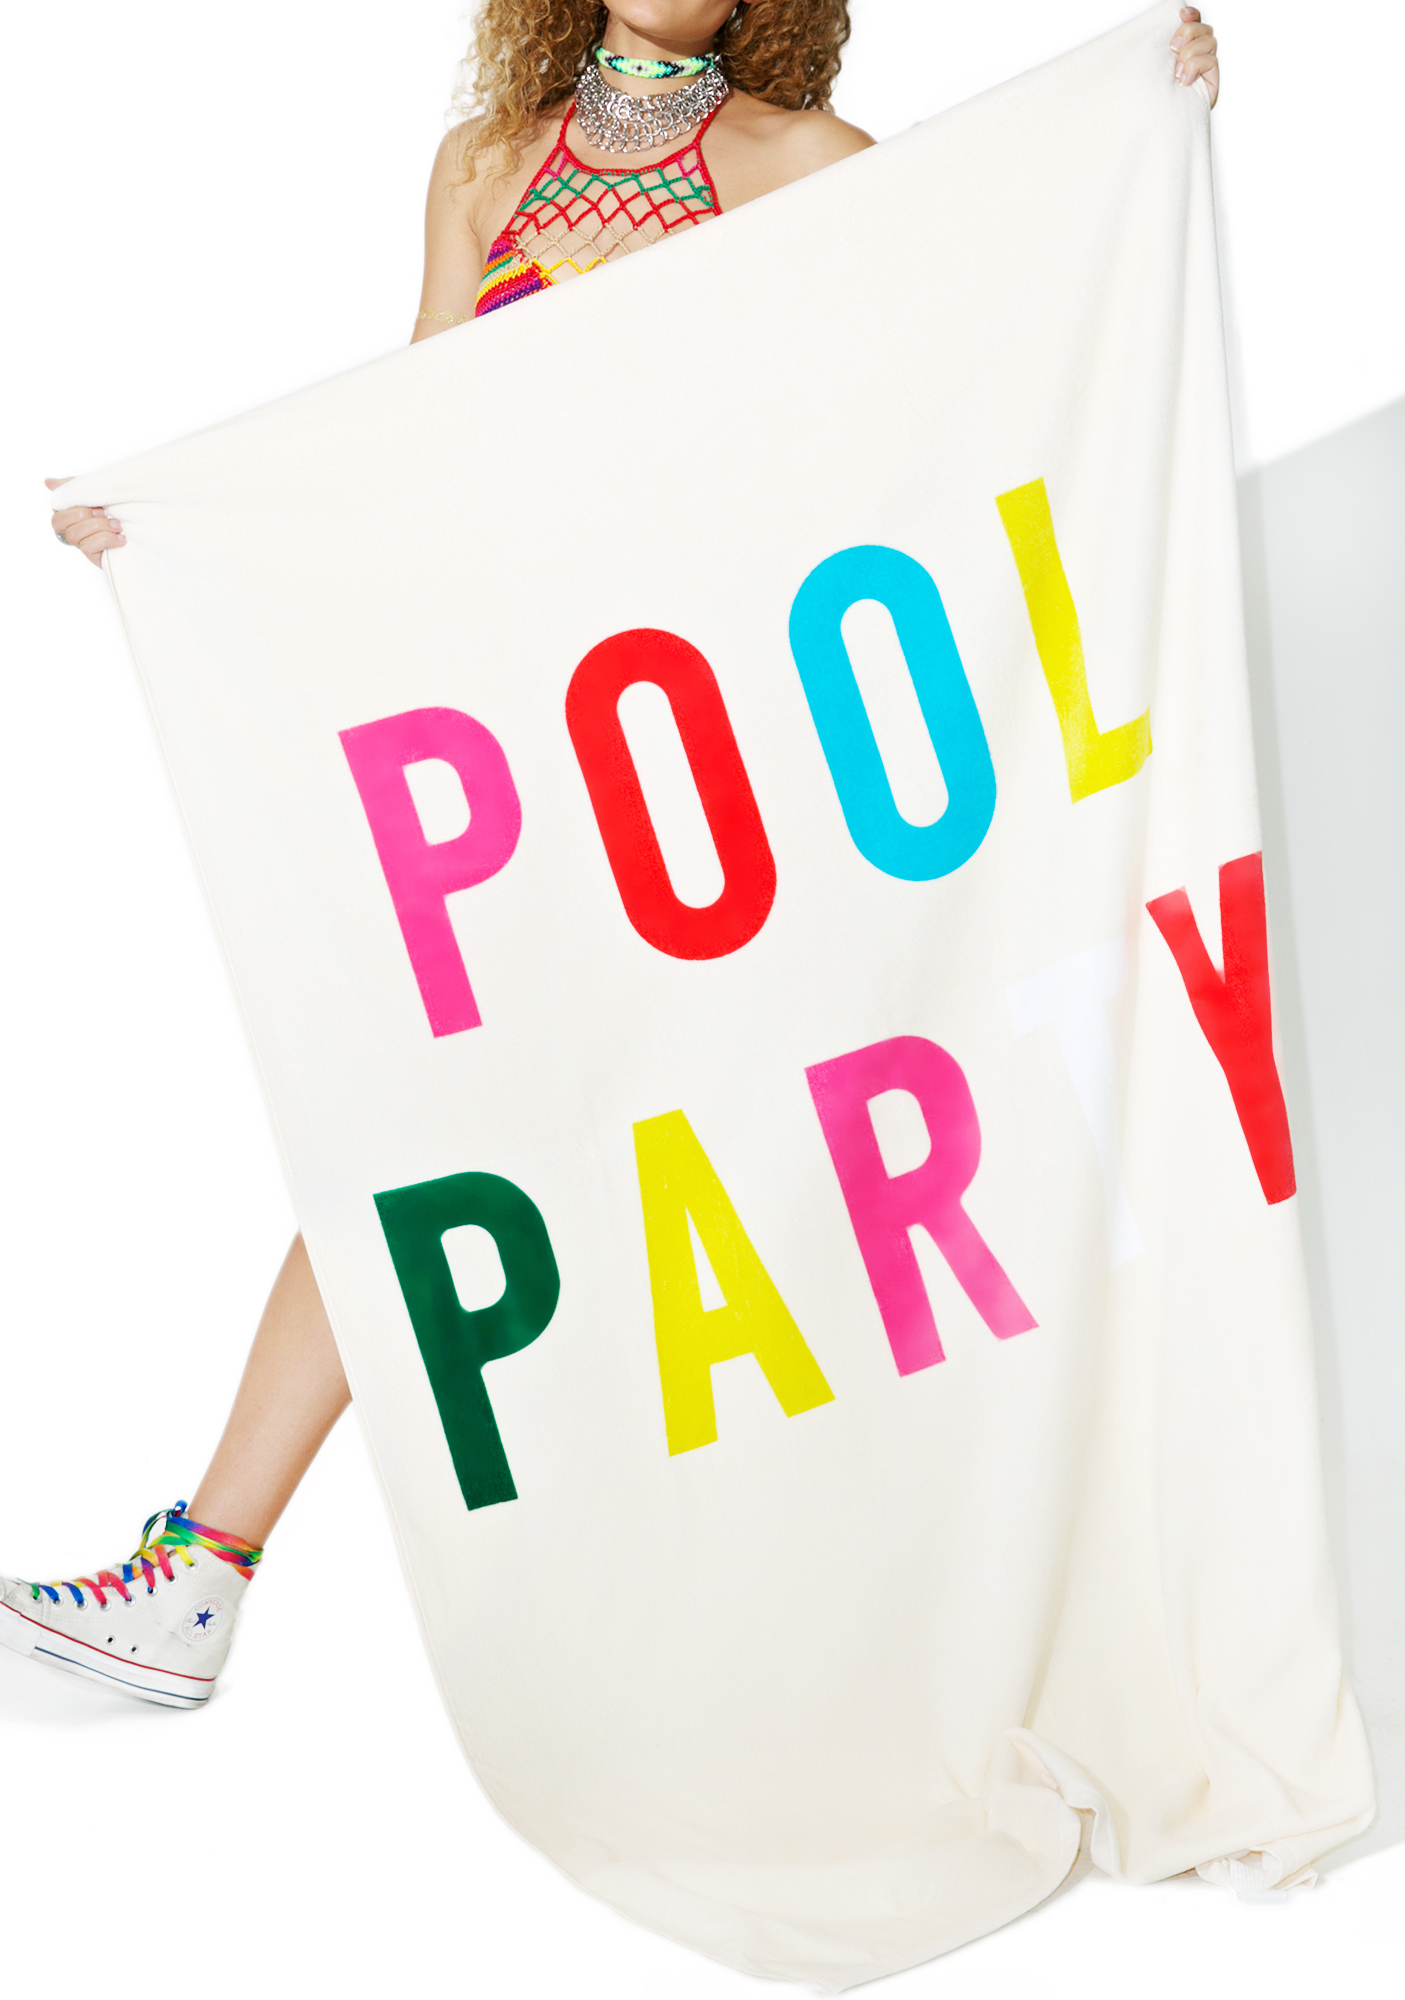 Poolside Party Giant Beach Towel